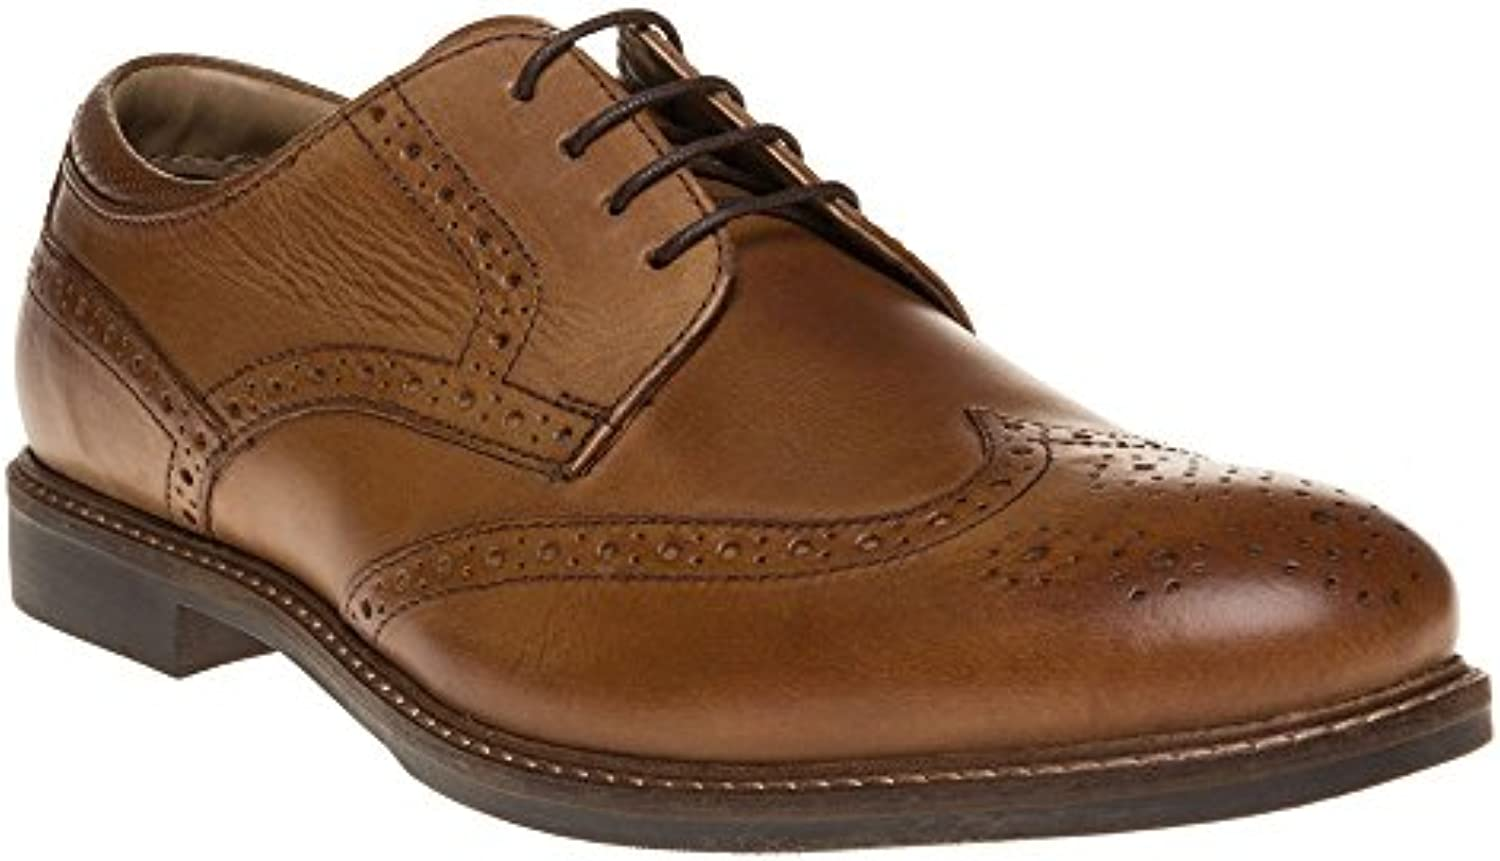 Red Tape Backford Herren Schuhe Beige